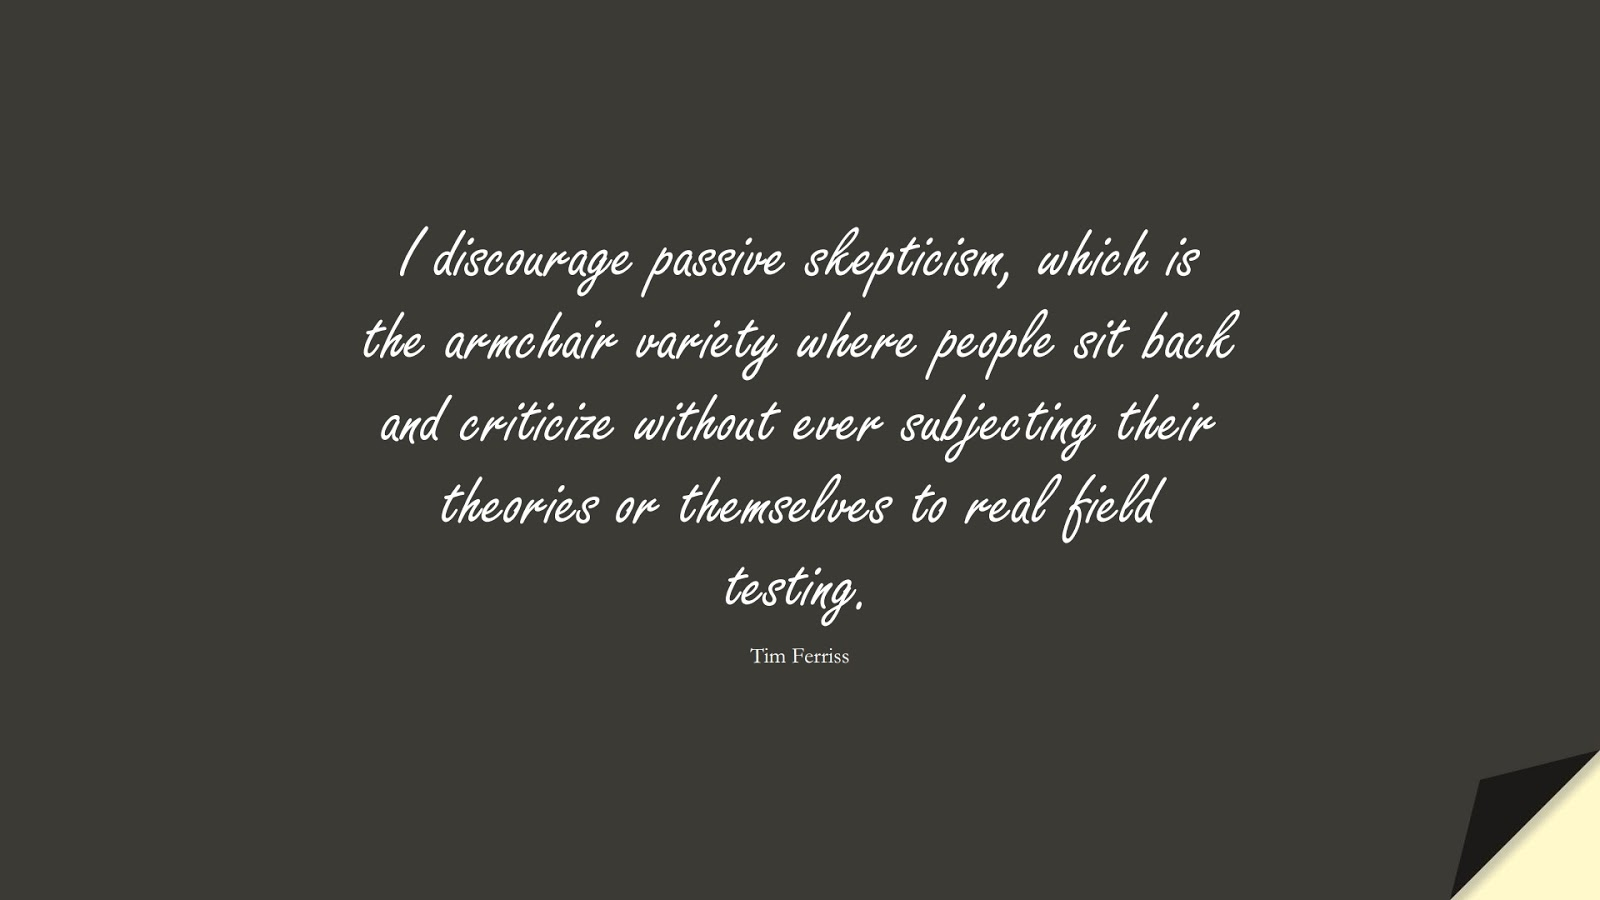 I discourage passive skepticism, which is the armchair variety where people sit back and criticize without ever subjecting their theories or themselves to real field testing. (Tim Ferriss);  #TimFerrissQuotes